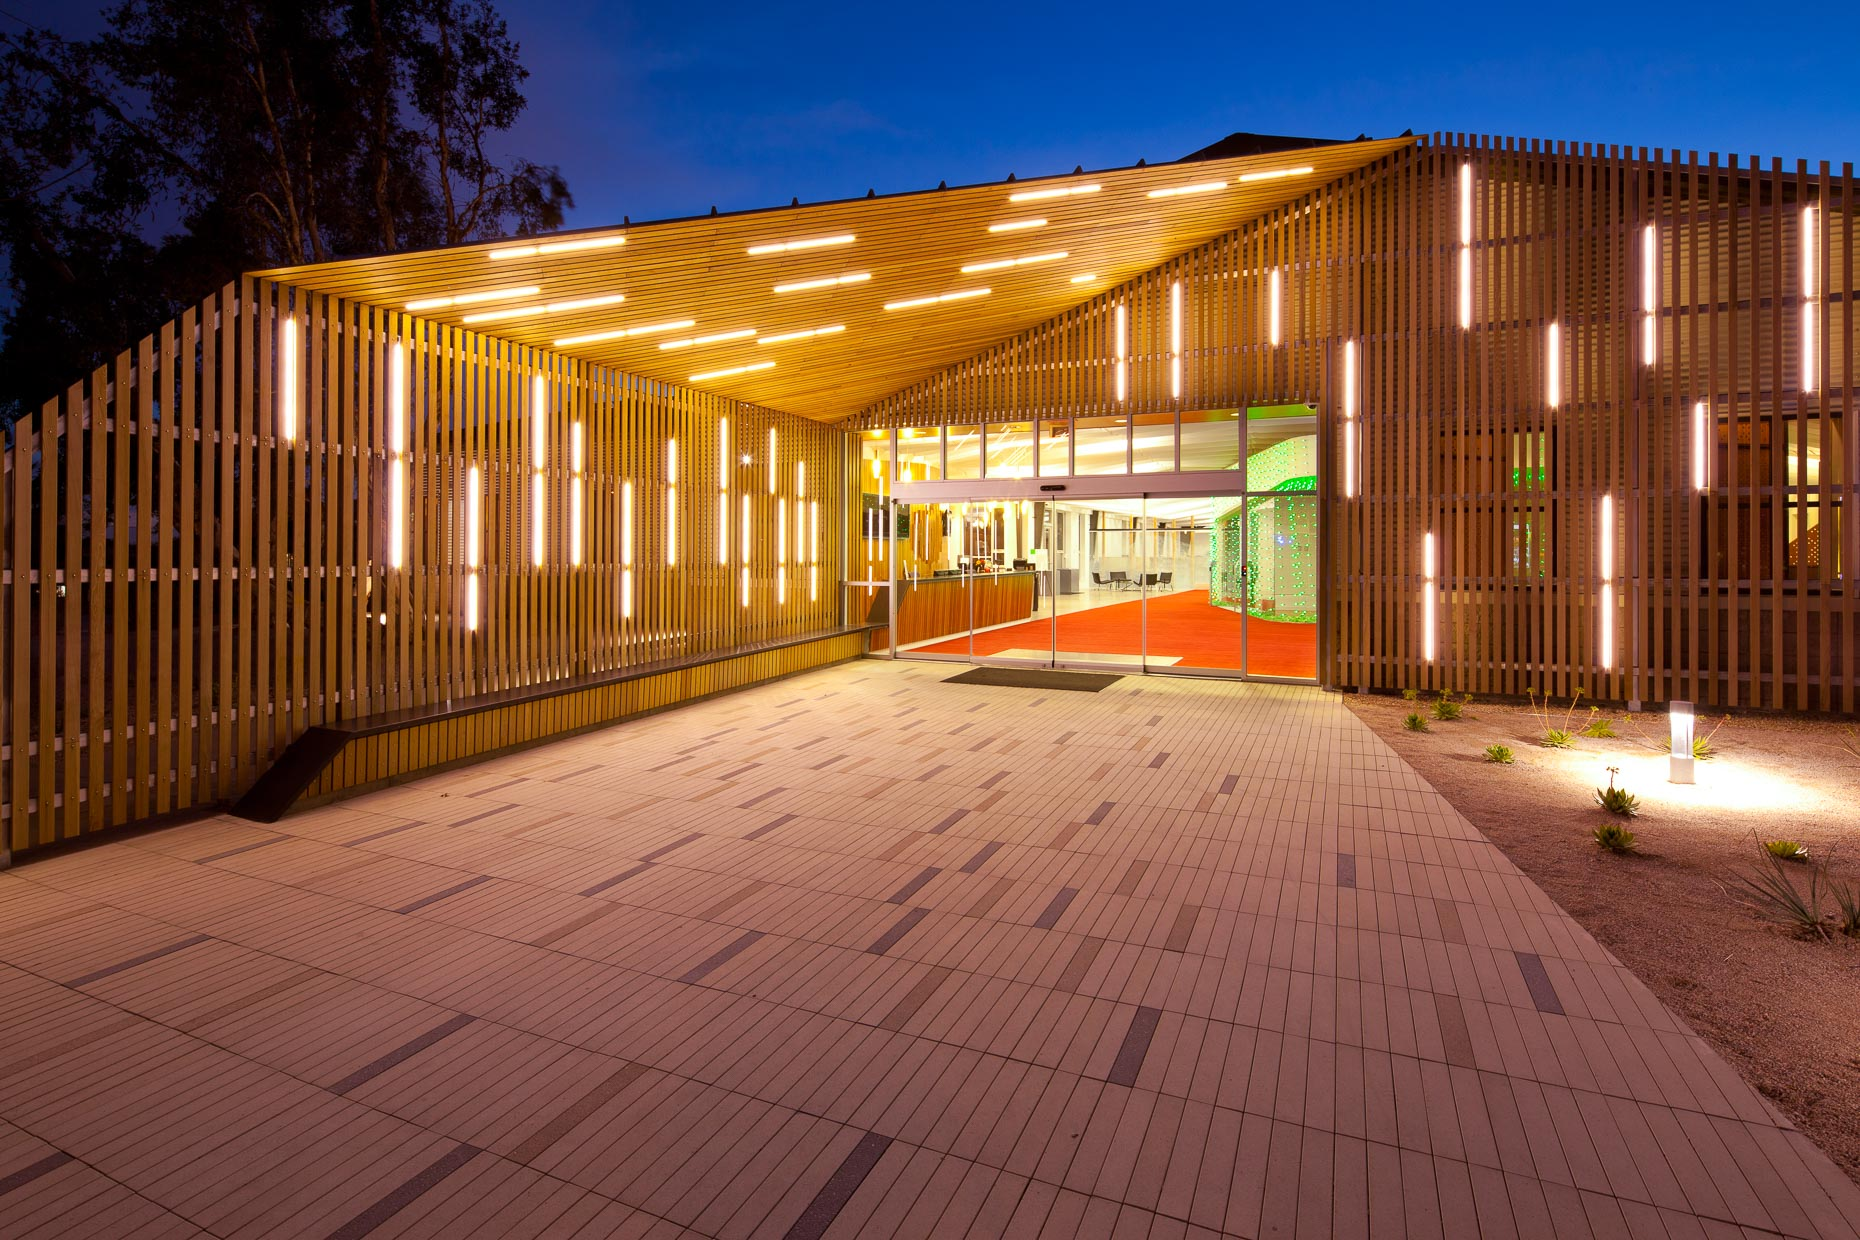 Modern commercial building entrance at dusk. Claremont, California. Architecture. David Zaitz Photography.